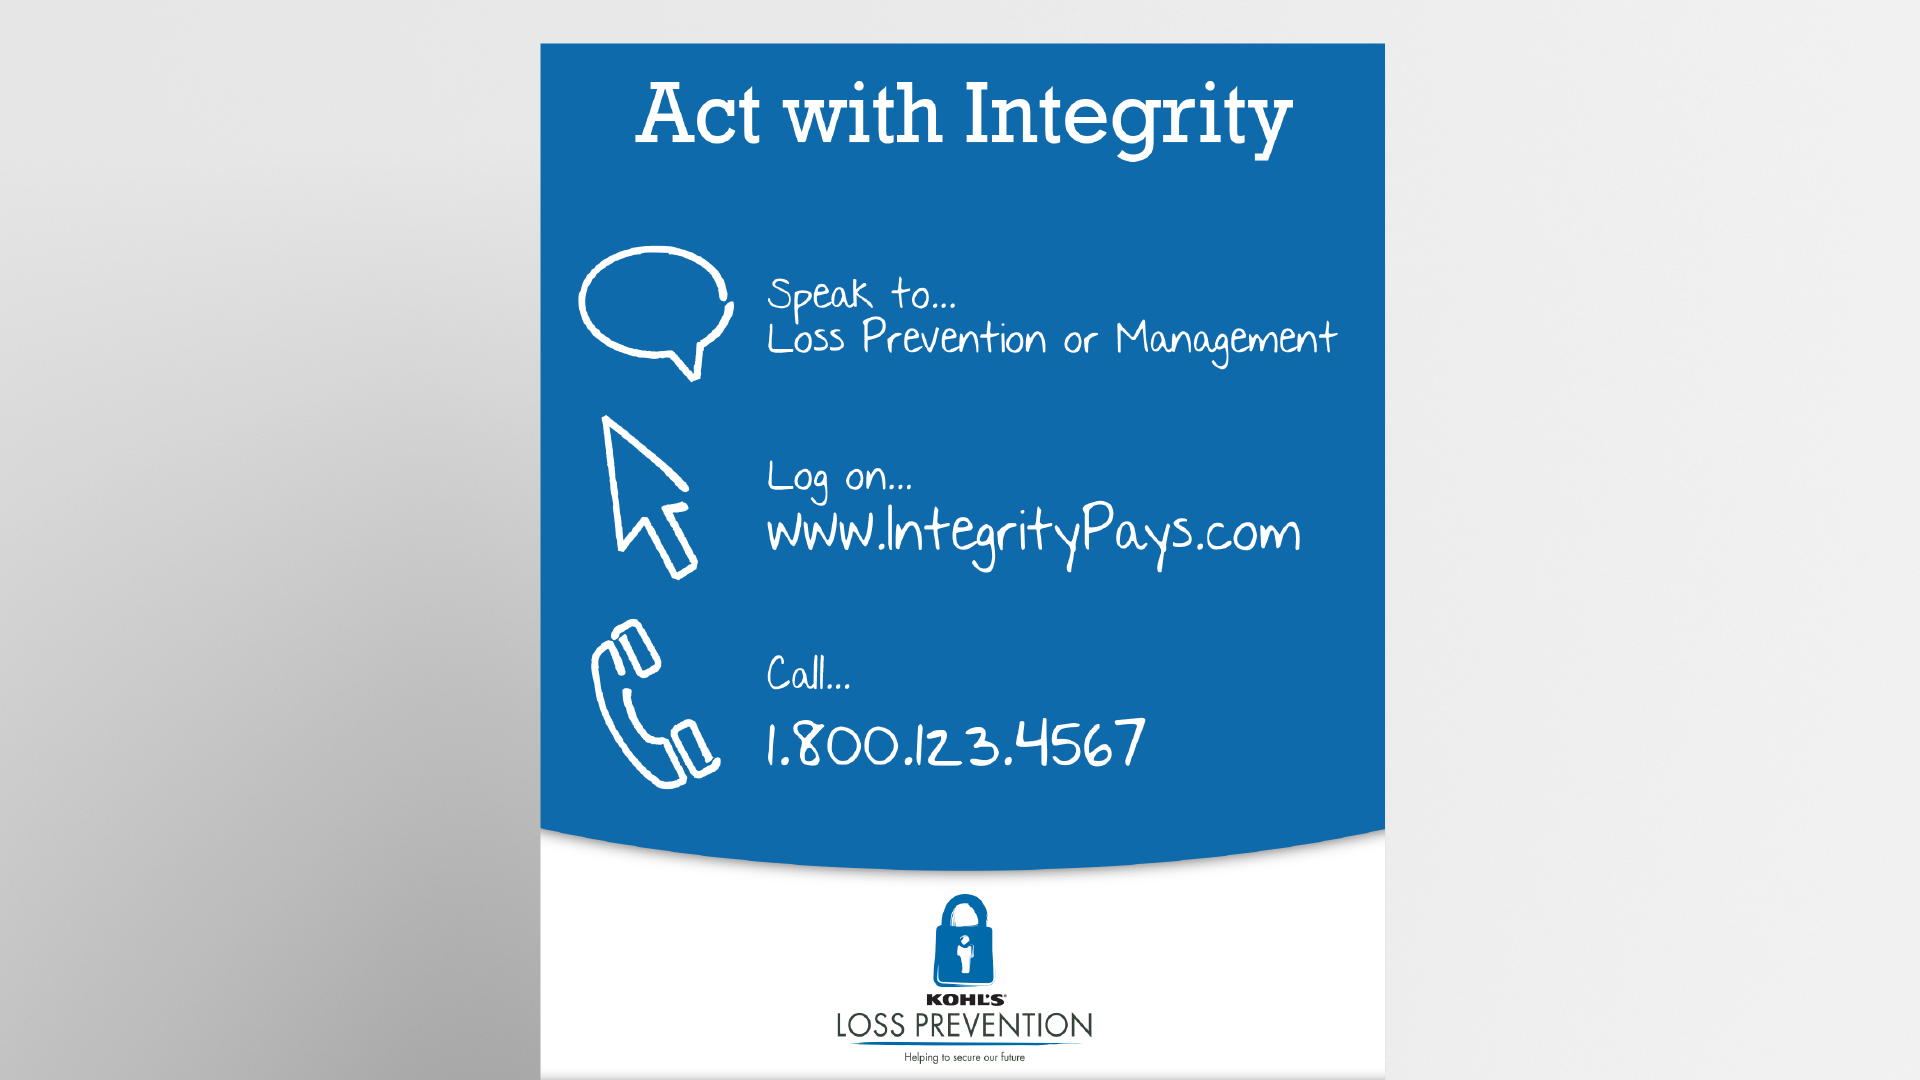 Tim Slade's eLearning Portfolio | Kohl's Act with Integrity poster Custom eLearning Development & Design graphic design